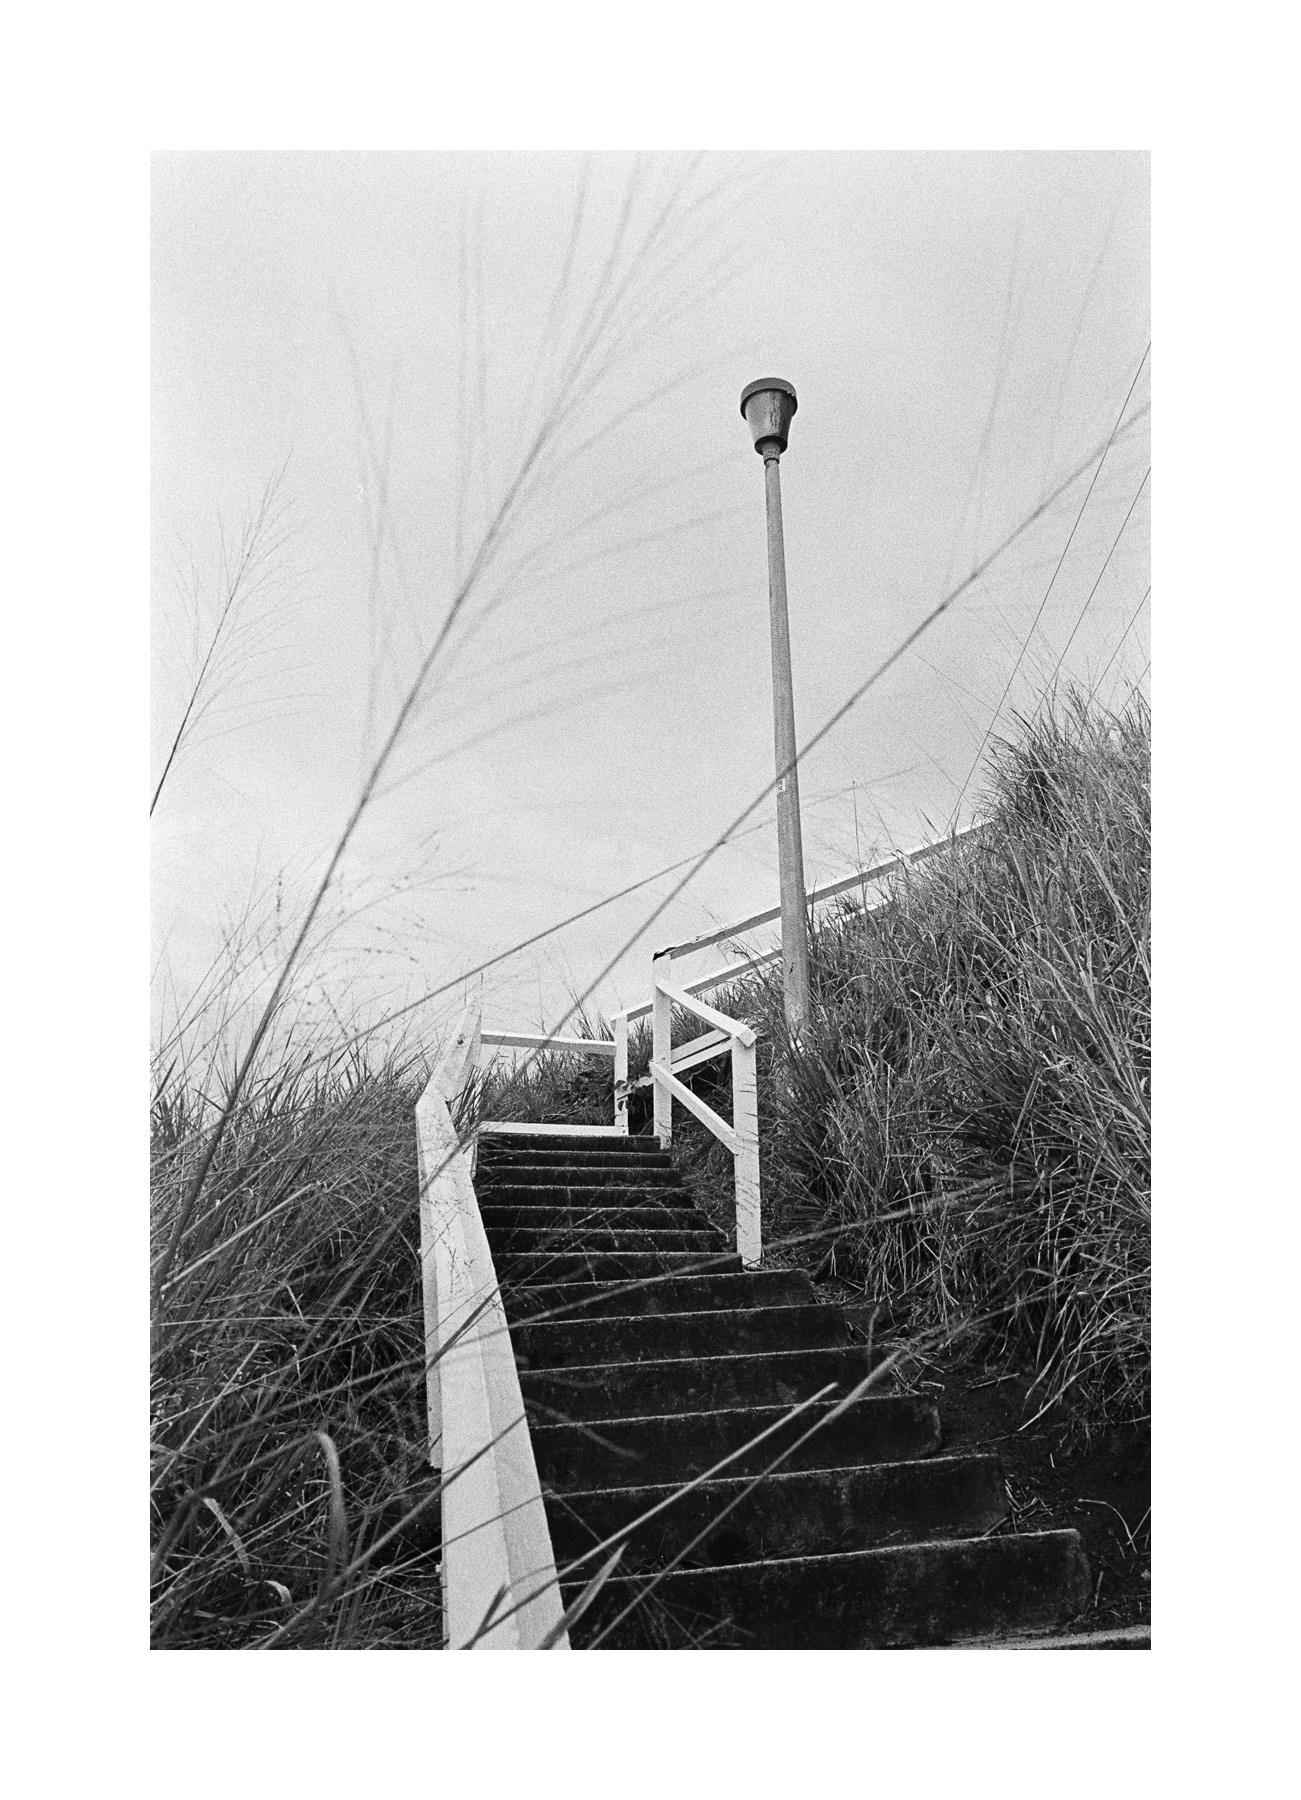 2018106 - Roll 252 - 029-Nick-Bedford,-Photographer-Black and White, Kodak TRI-X 400, Landscape Photography, Leica M7, Shorncliffe, Voigtlander 35mm F1.7.jpg